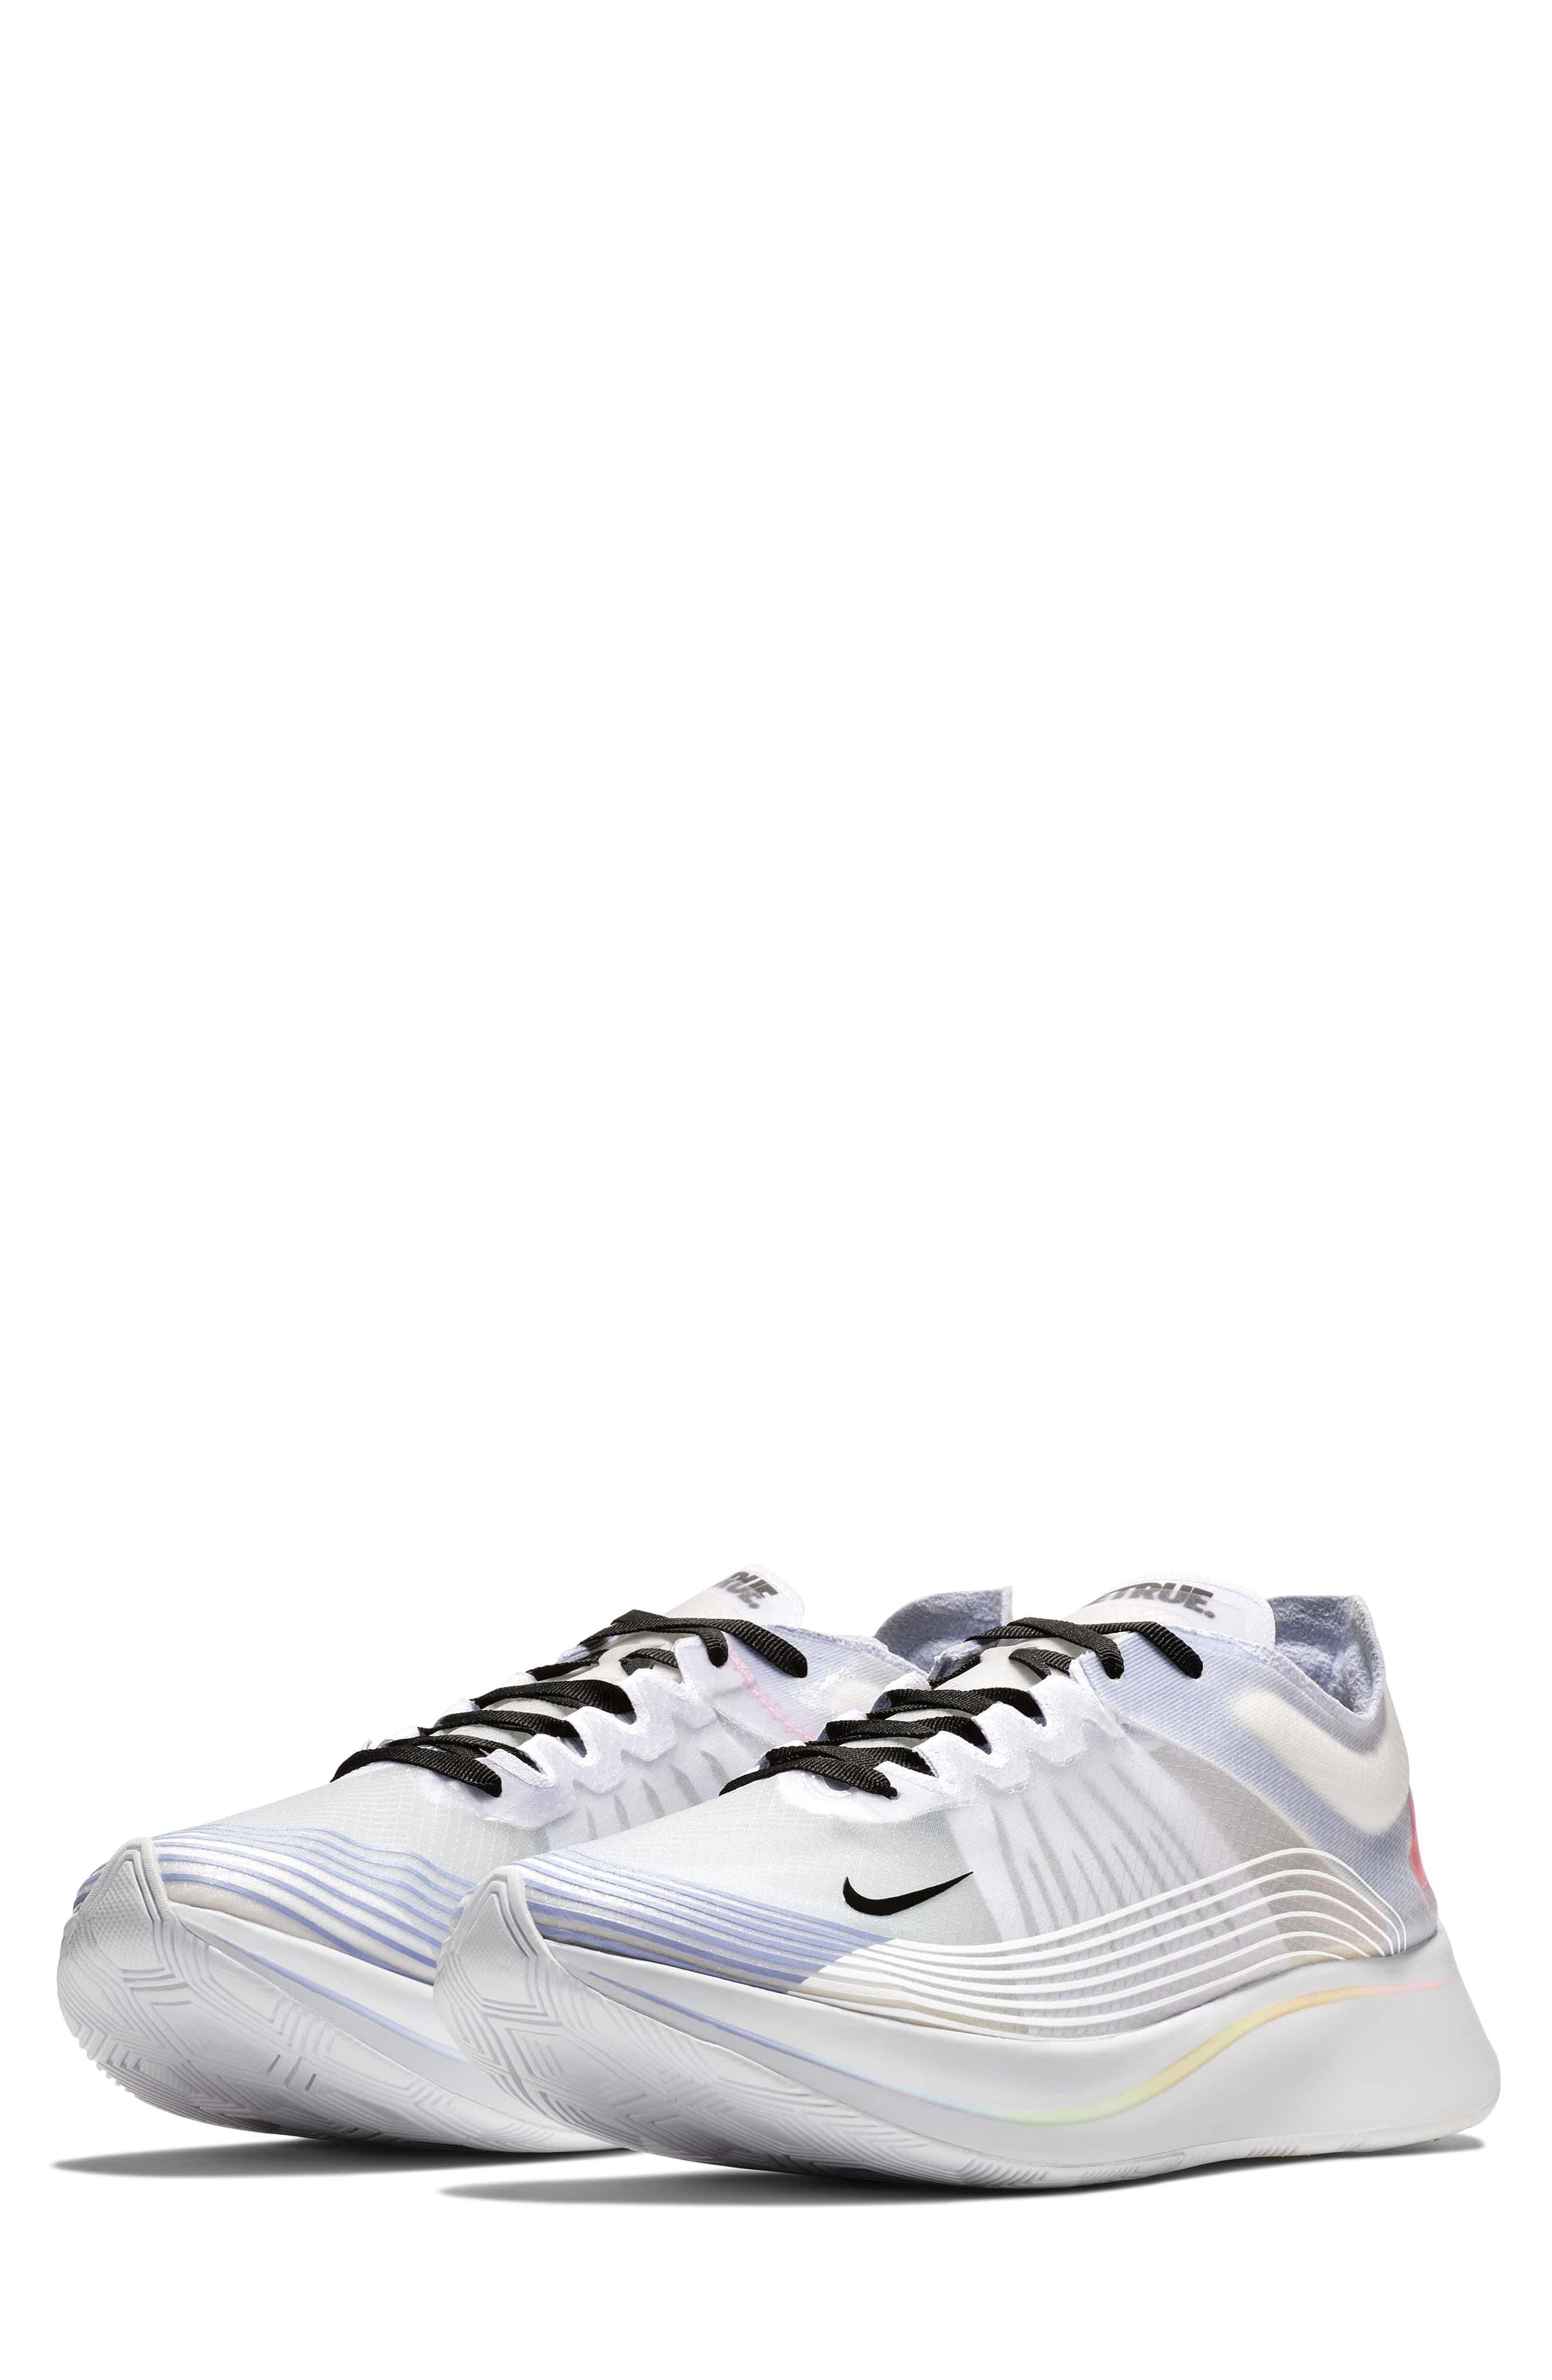 Nordstrom x Nike Zoom Fly BETRUE Running Shoe,                         Main,                         color, White/ Black/ Palest Purple